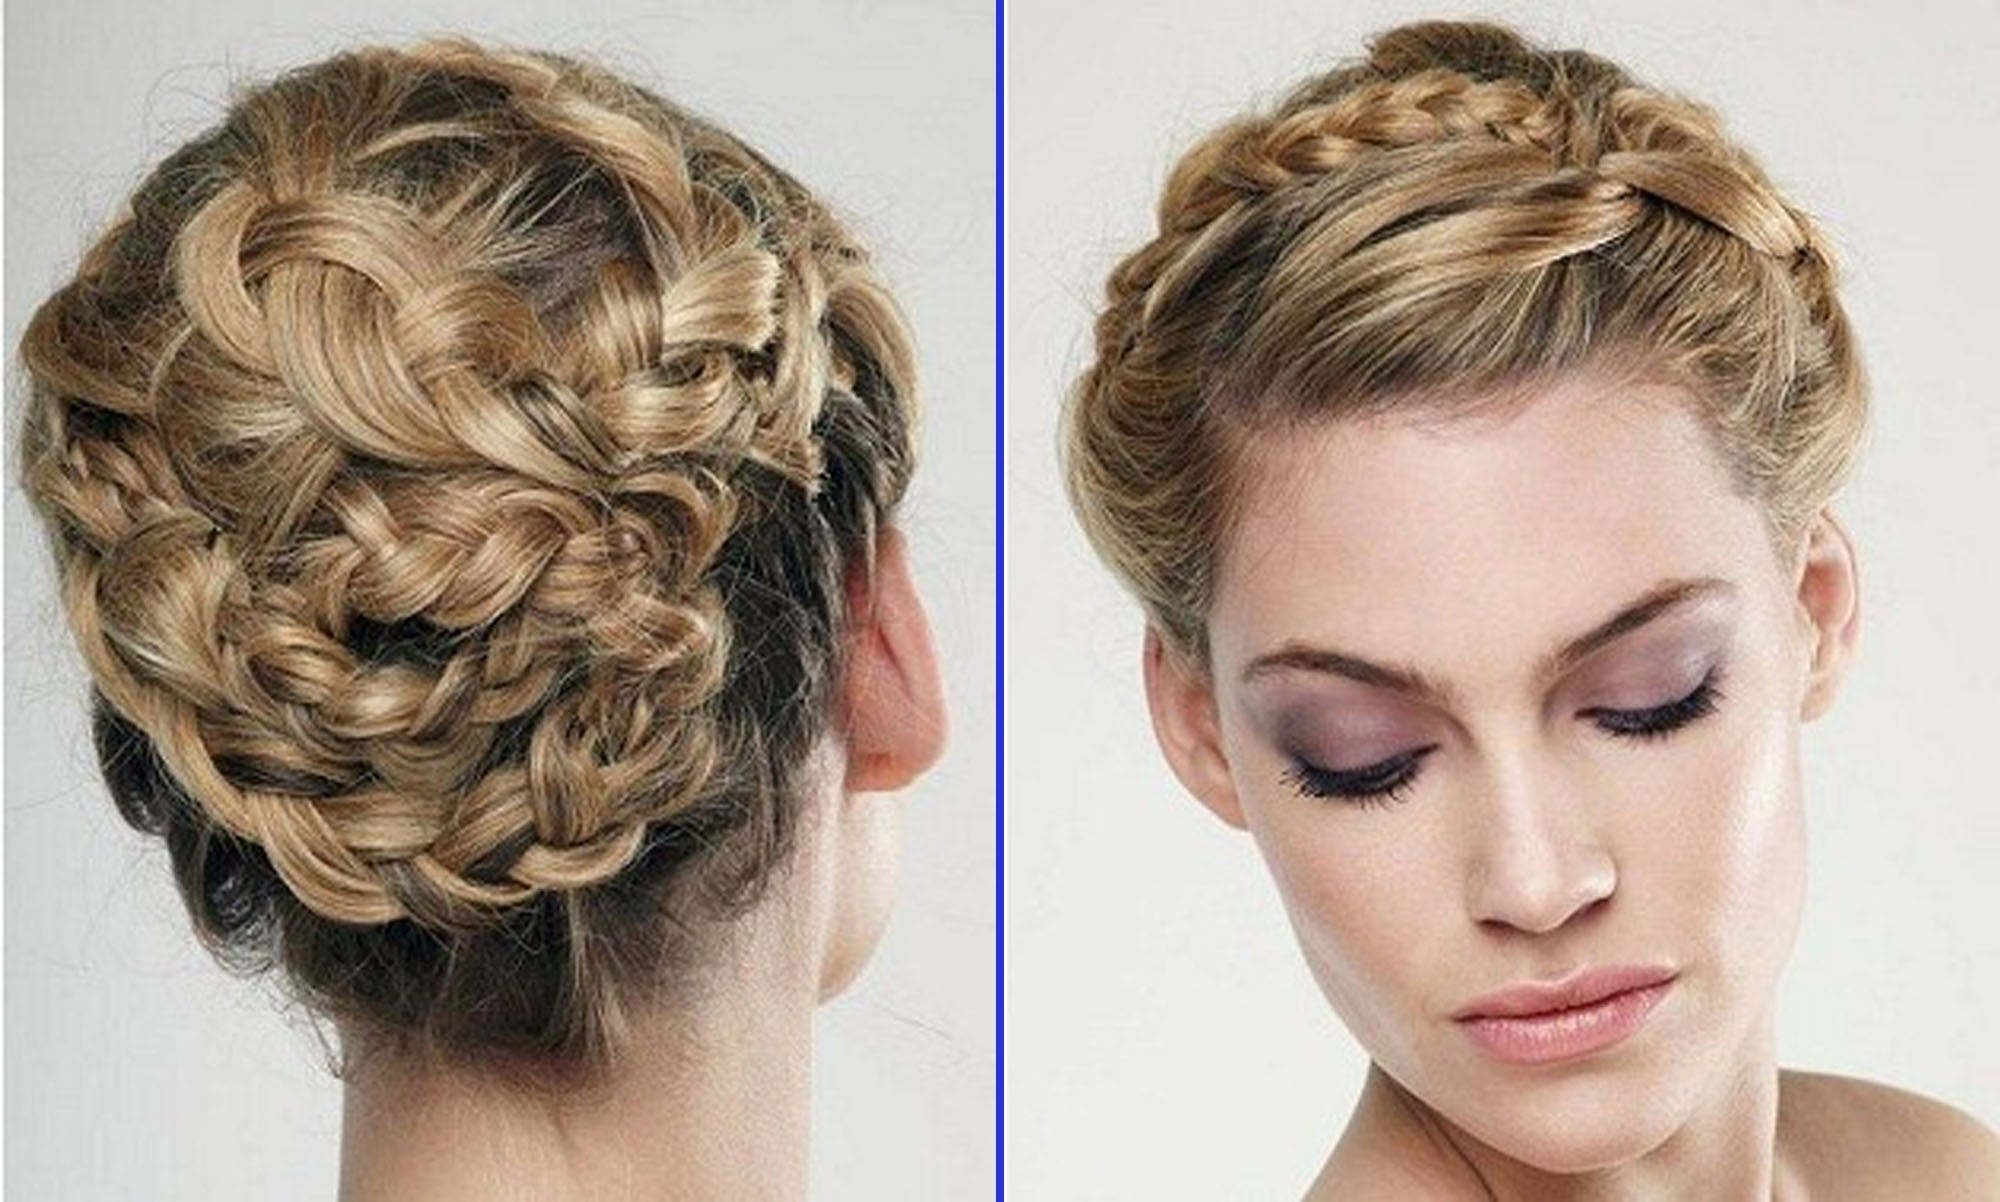 Braided Updo Hairstyles Wedding For Women Hairdresser | Medium Hair Intended For Wavy Hair Updo Hairstyles (View 1 of 15)